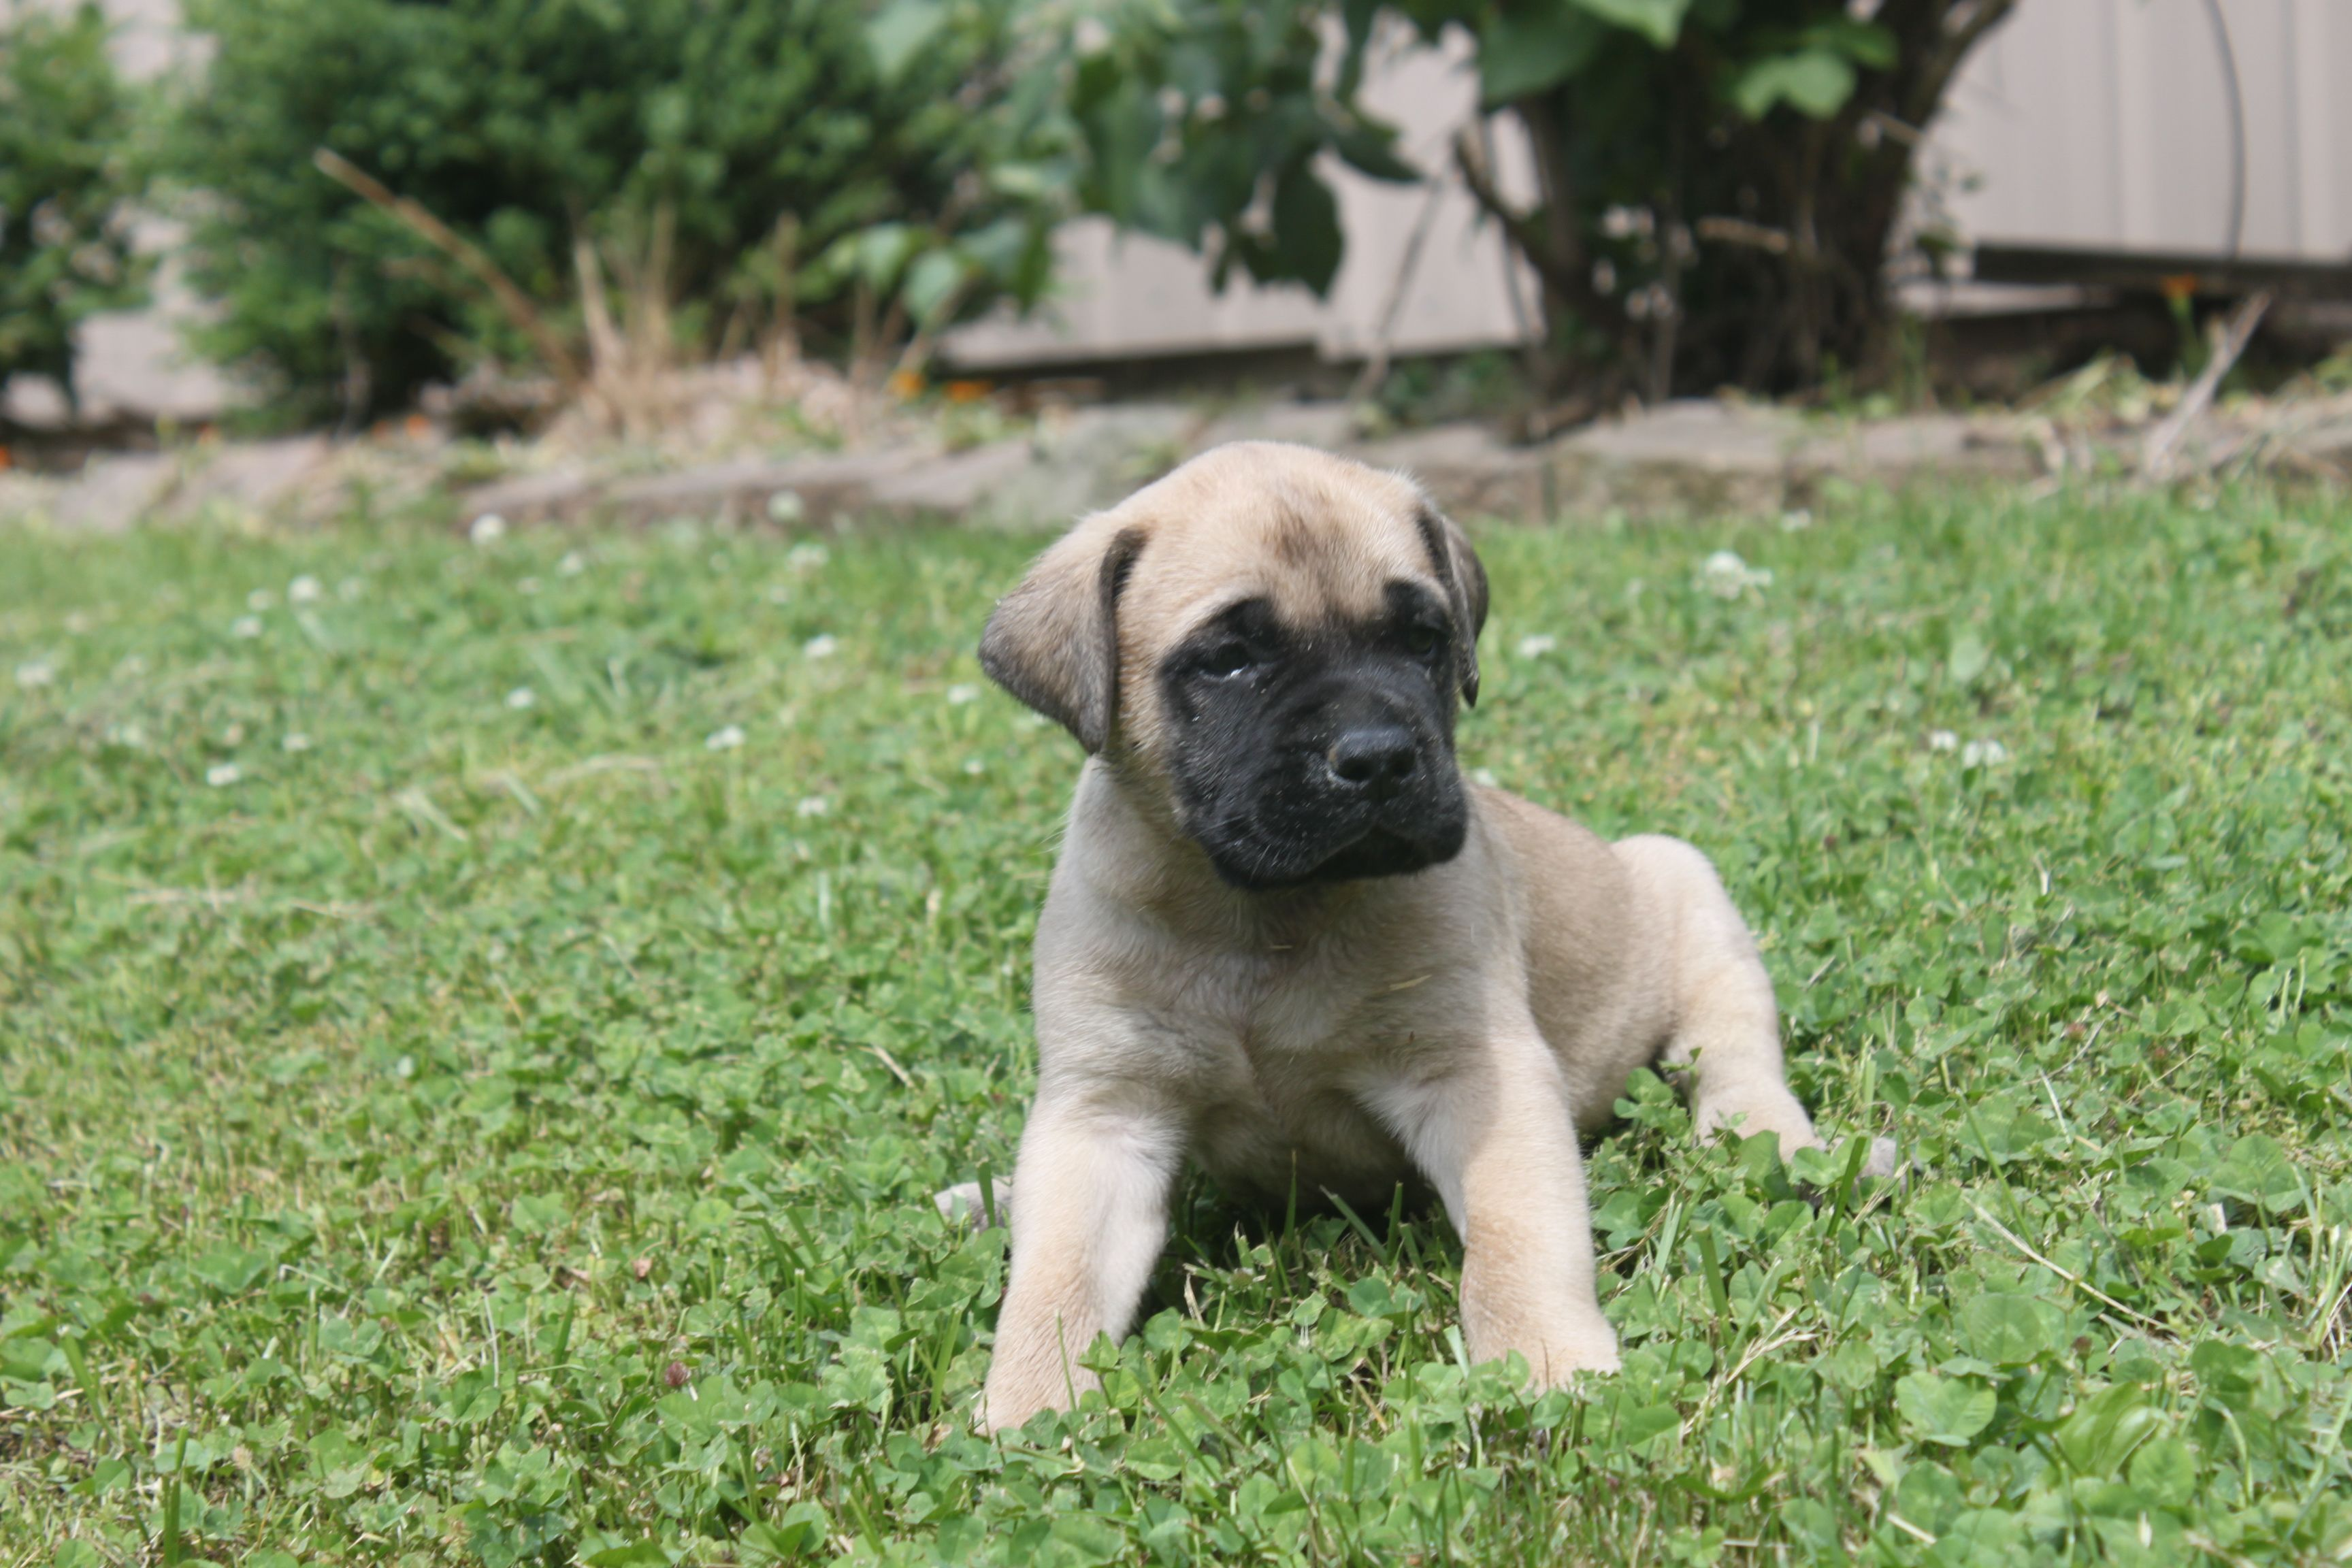 Fawn English Mastiff Puppies Here Is A 5 Week Old Fawn Female